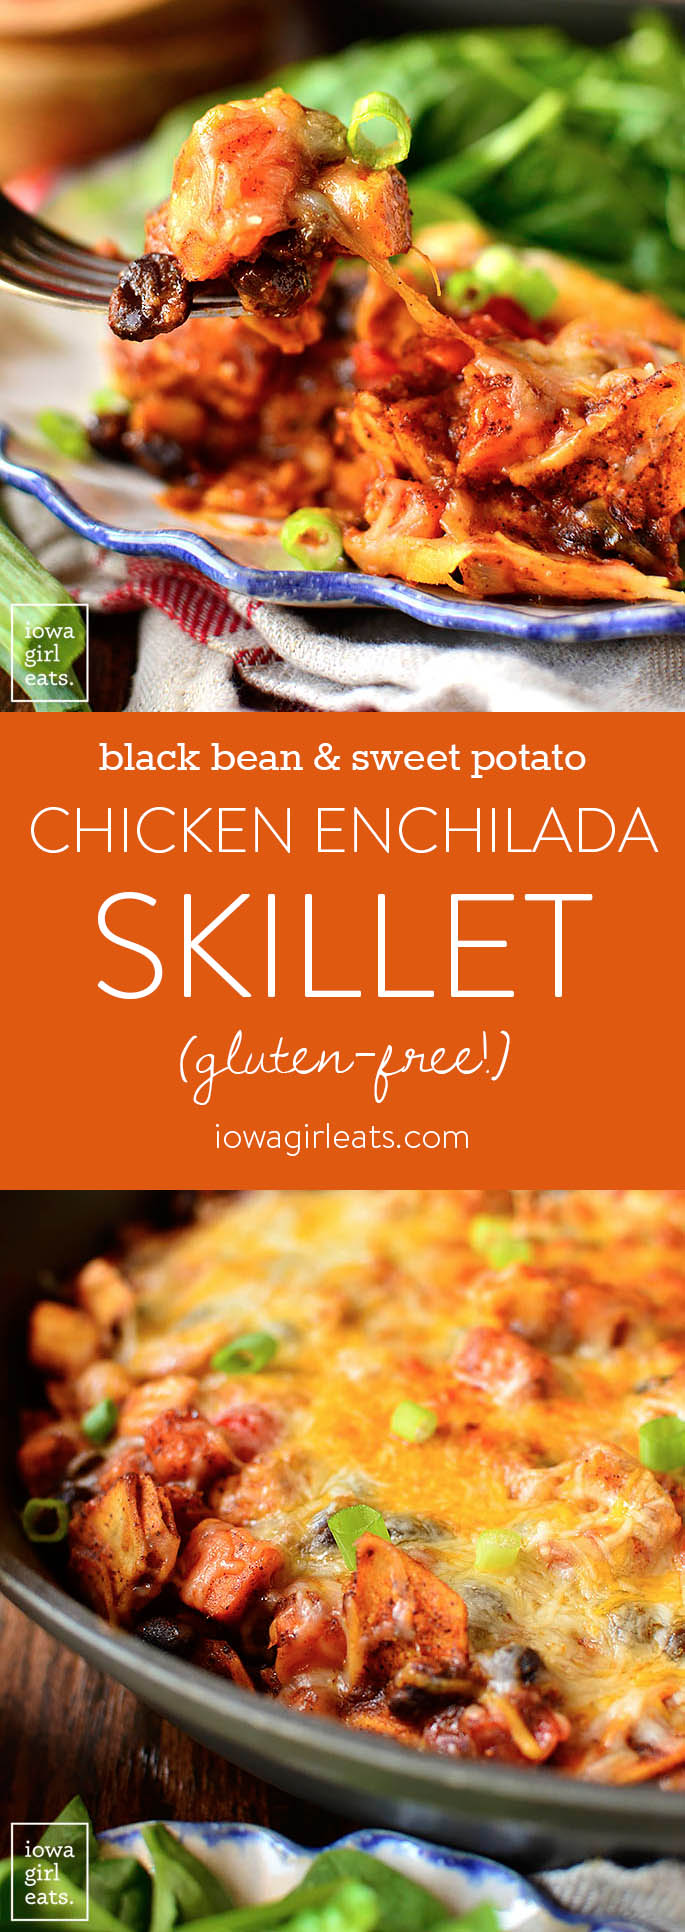 "Black Bean and Sweet Potato Chicken Enchilada Skillet is a healthy, 1 skillet, gluten-free dinner recipe that my entire family (including my 4 year old!) described as ""really, REALLY good!"" 